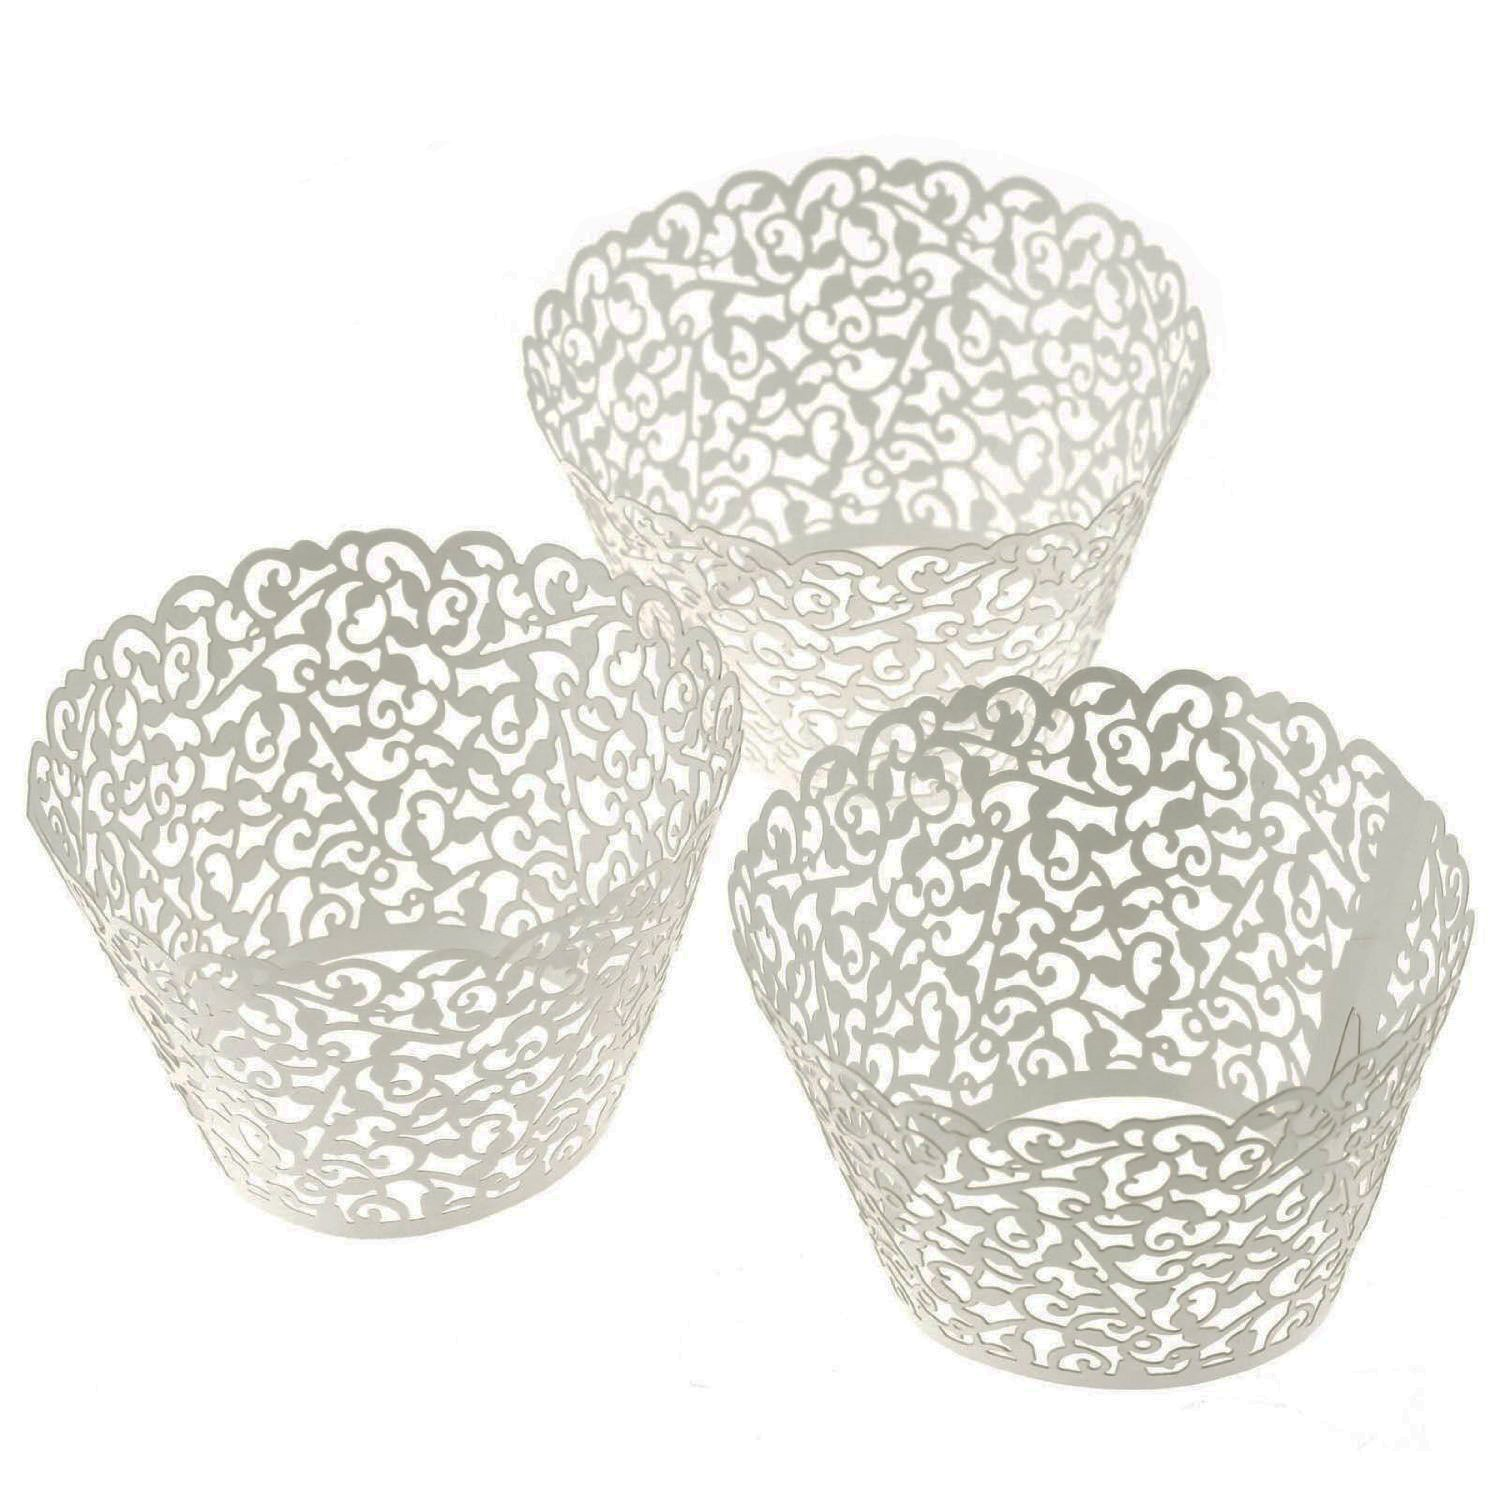 LEFV™ 24pcs Cupcake Wrapper Filigree Little Vine Lace Laser Cut Liner Baking Cup Muffin Case Trays Wraps Wedding Birthday Party Decoration Silver